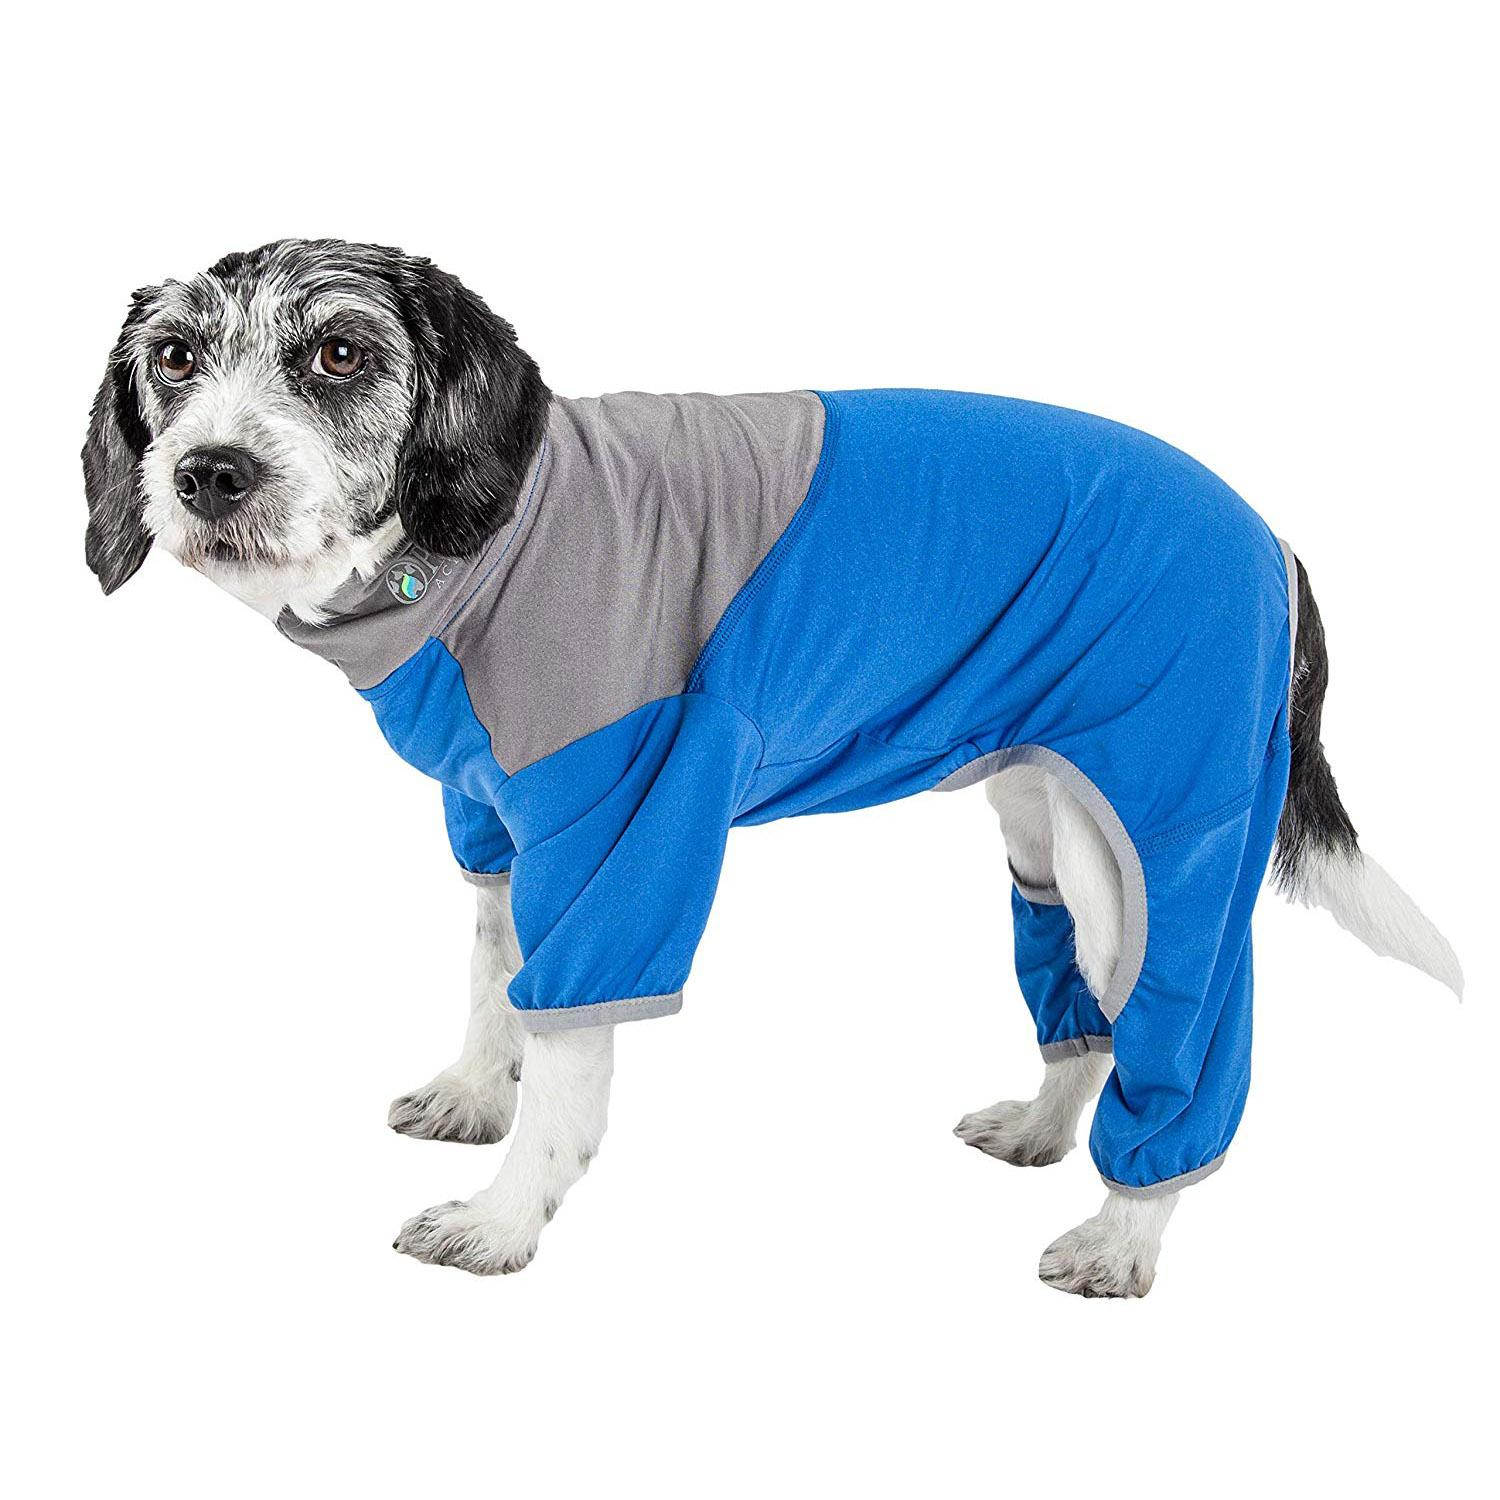 Pet Life ACTIVE 'Embarker' Performance Full-Body Dog Warm Up Suit - Blue and Grey